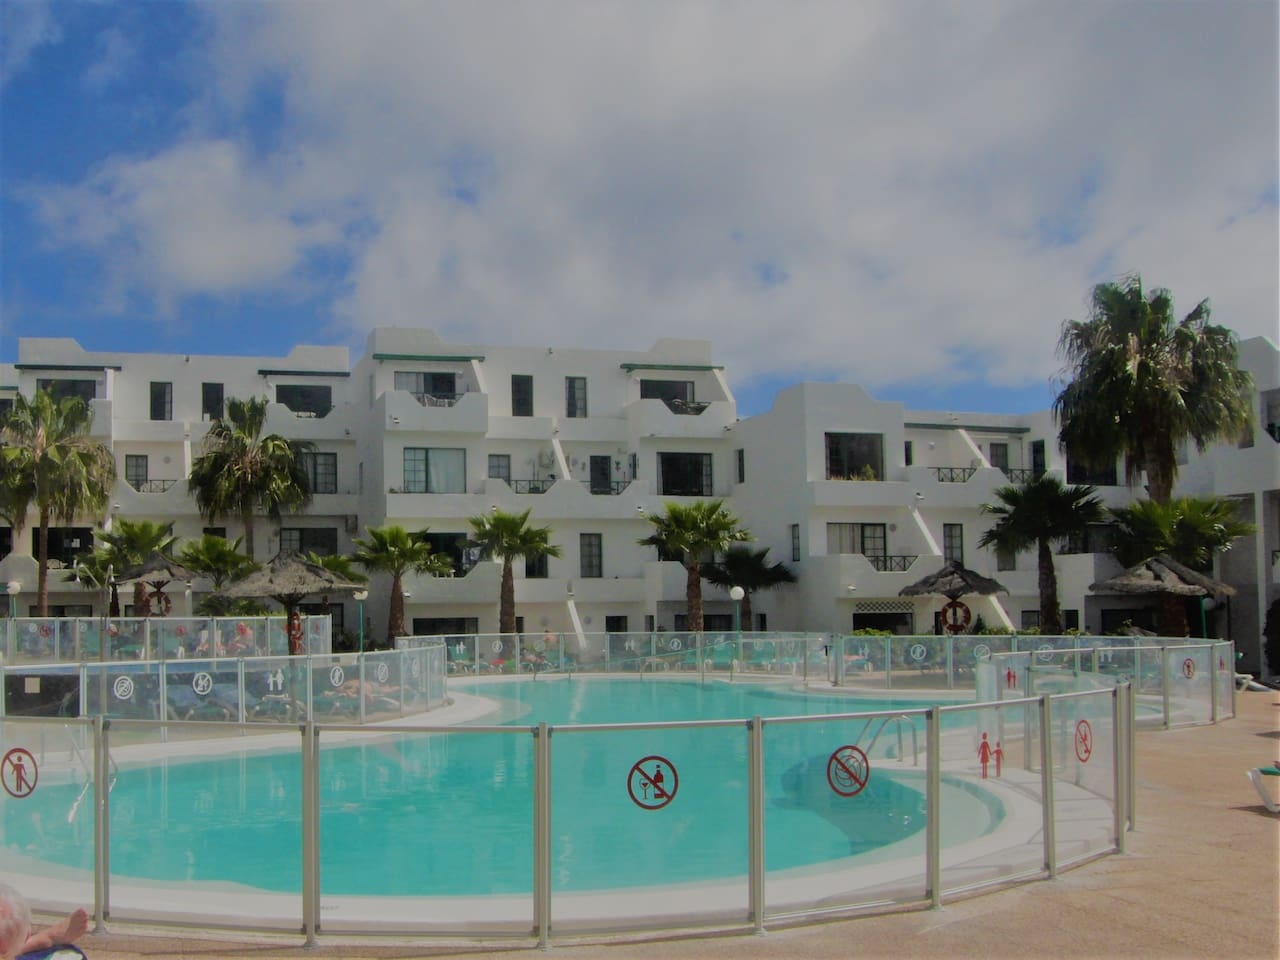 1 Bed apartment with sea and pool views, sleeps up to 4 guests